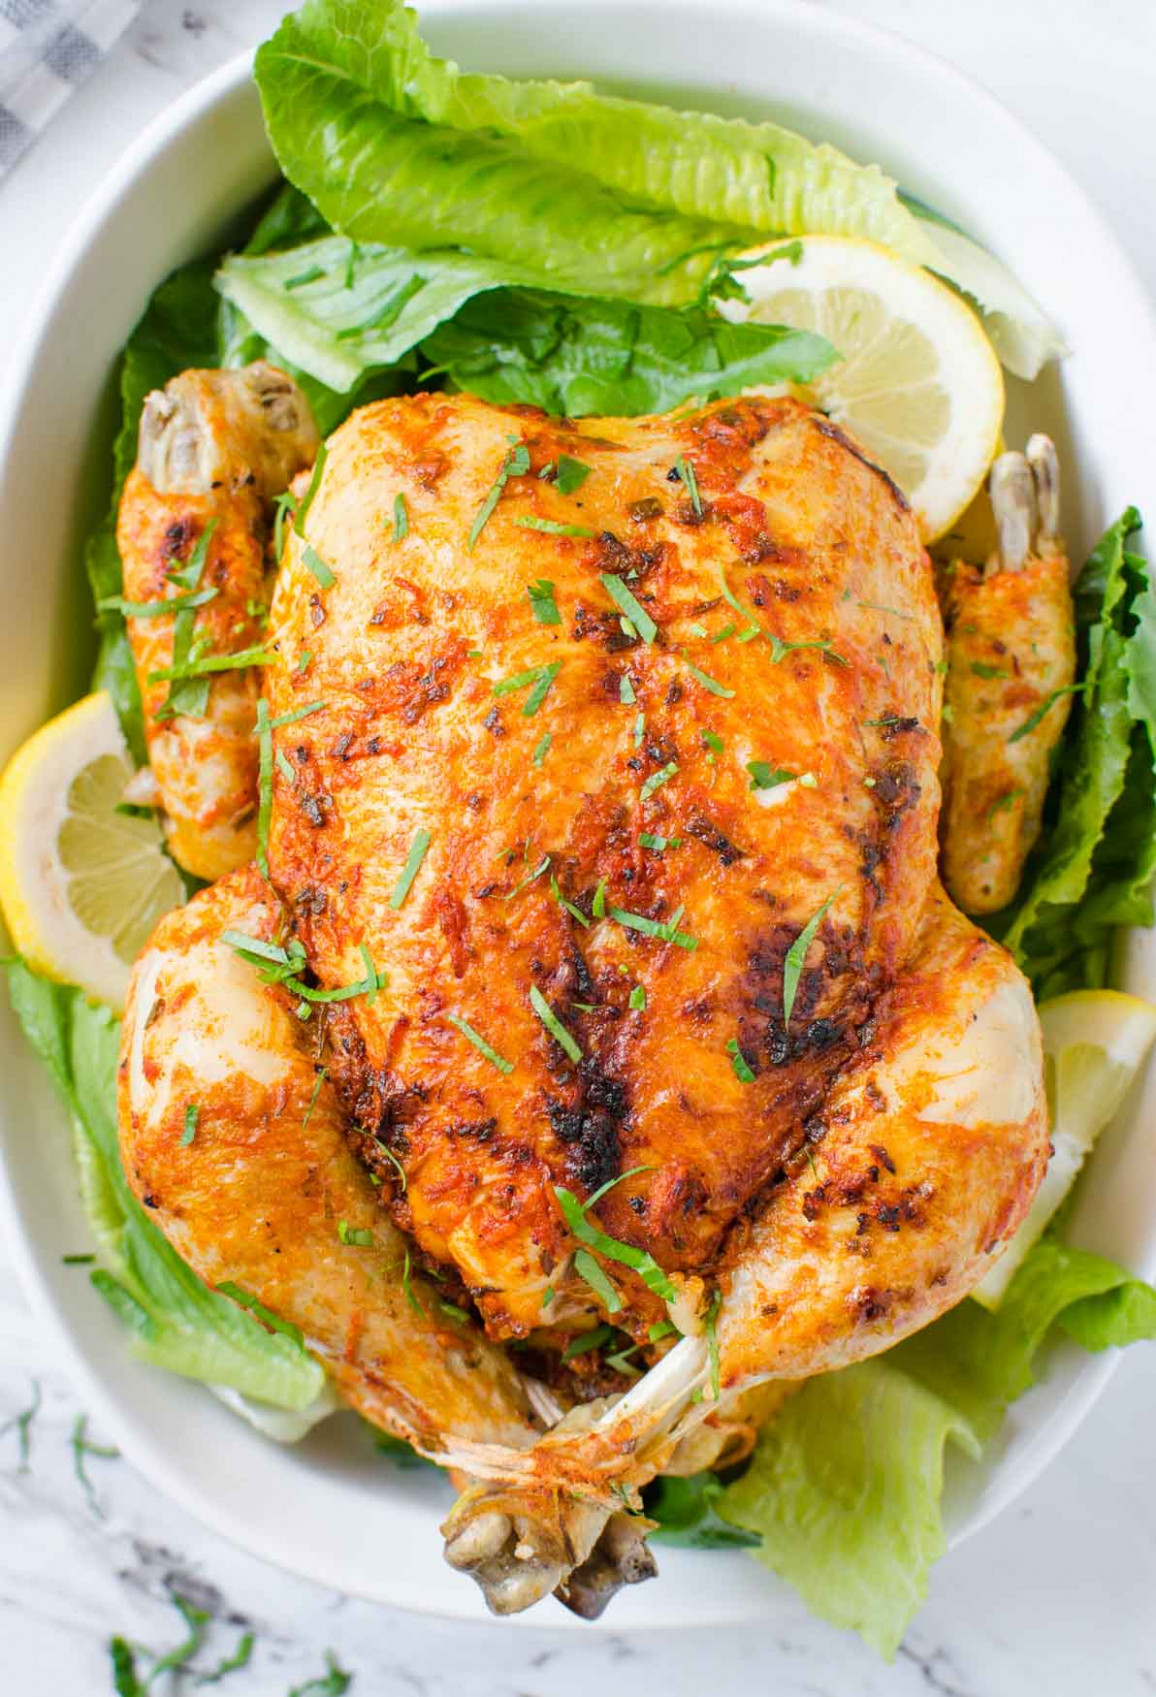 50 Easy Instant Pot Chicken Recipes - Proverbial Homemaker - recipes for whole chicken